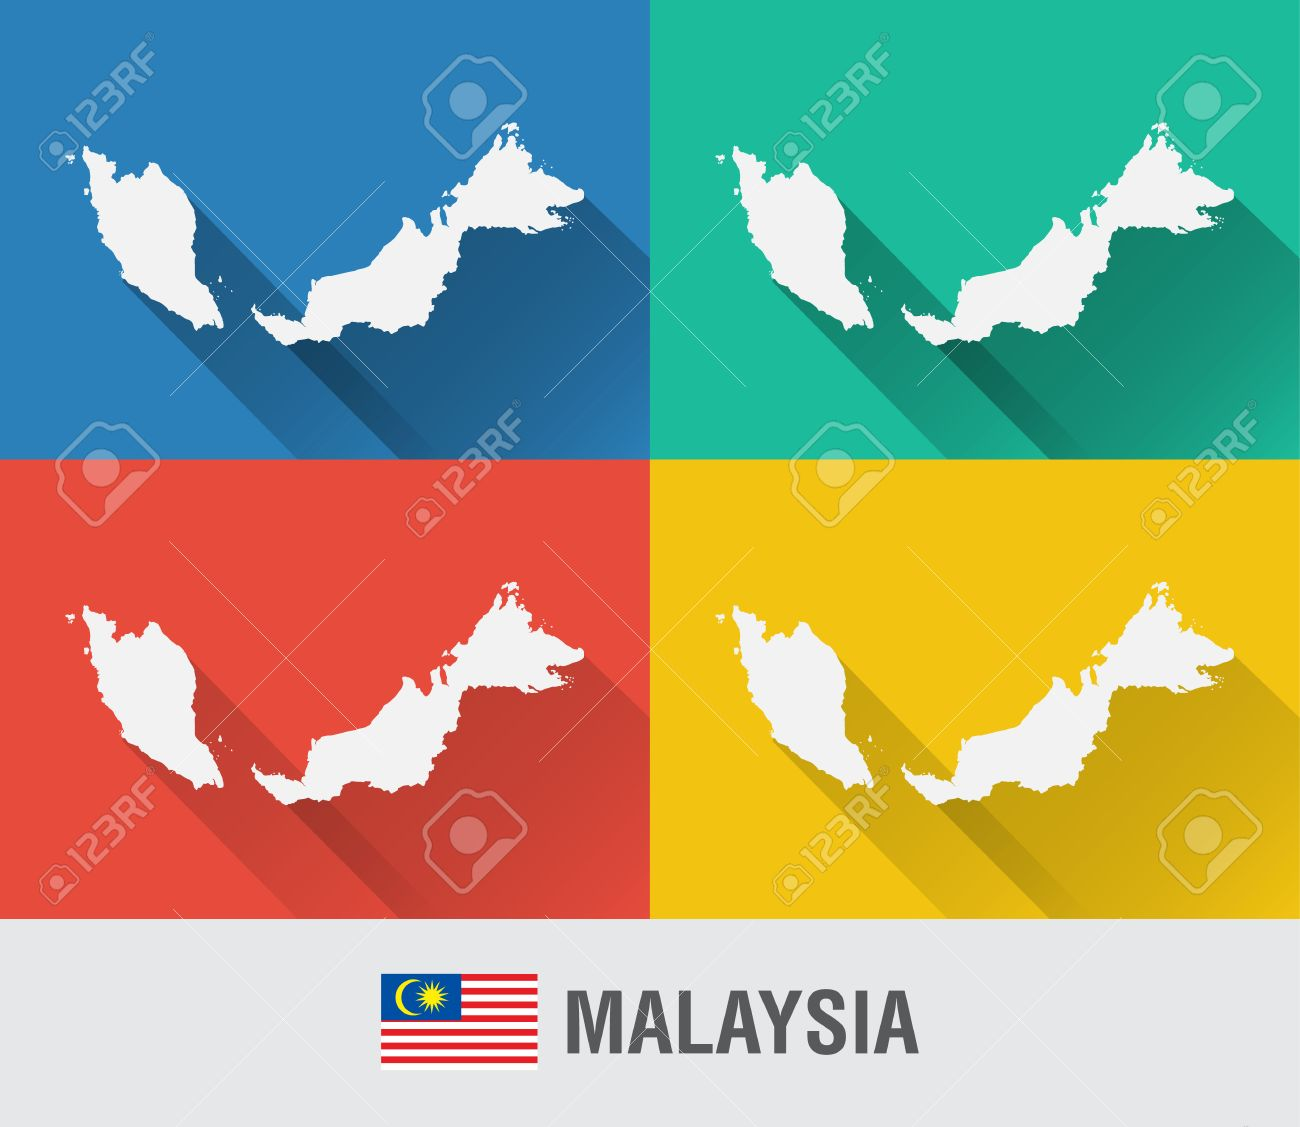 Malaysia On The World Map.Malaysia World Map In Flat Style With 4 Colors Modern Map Design